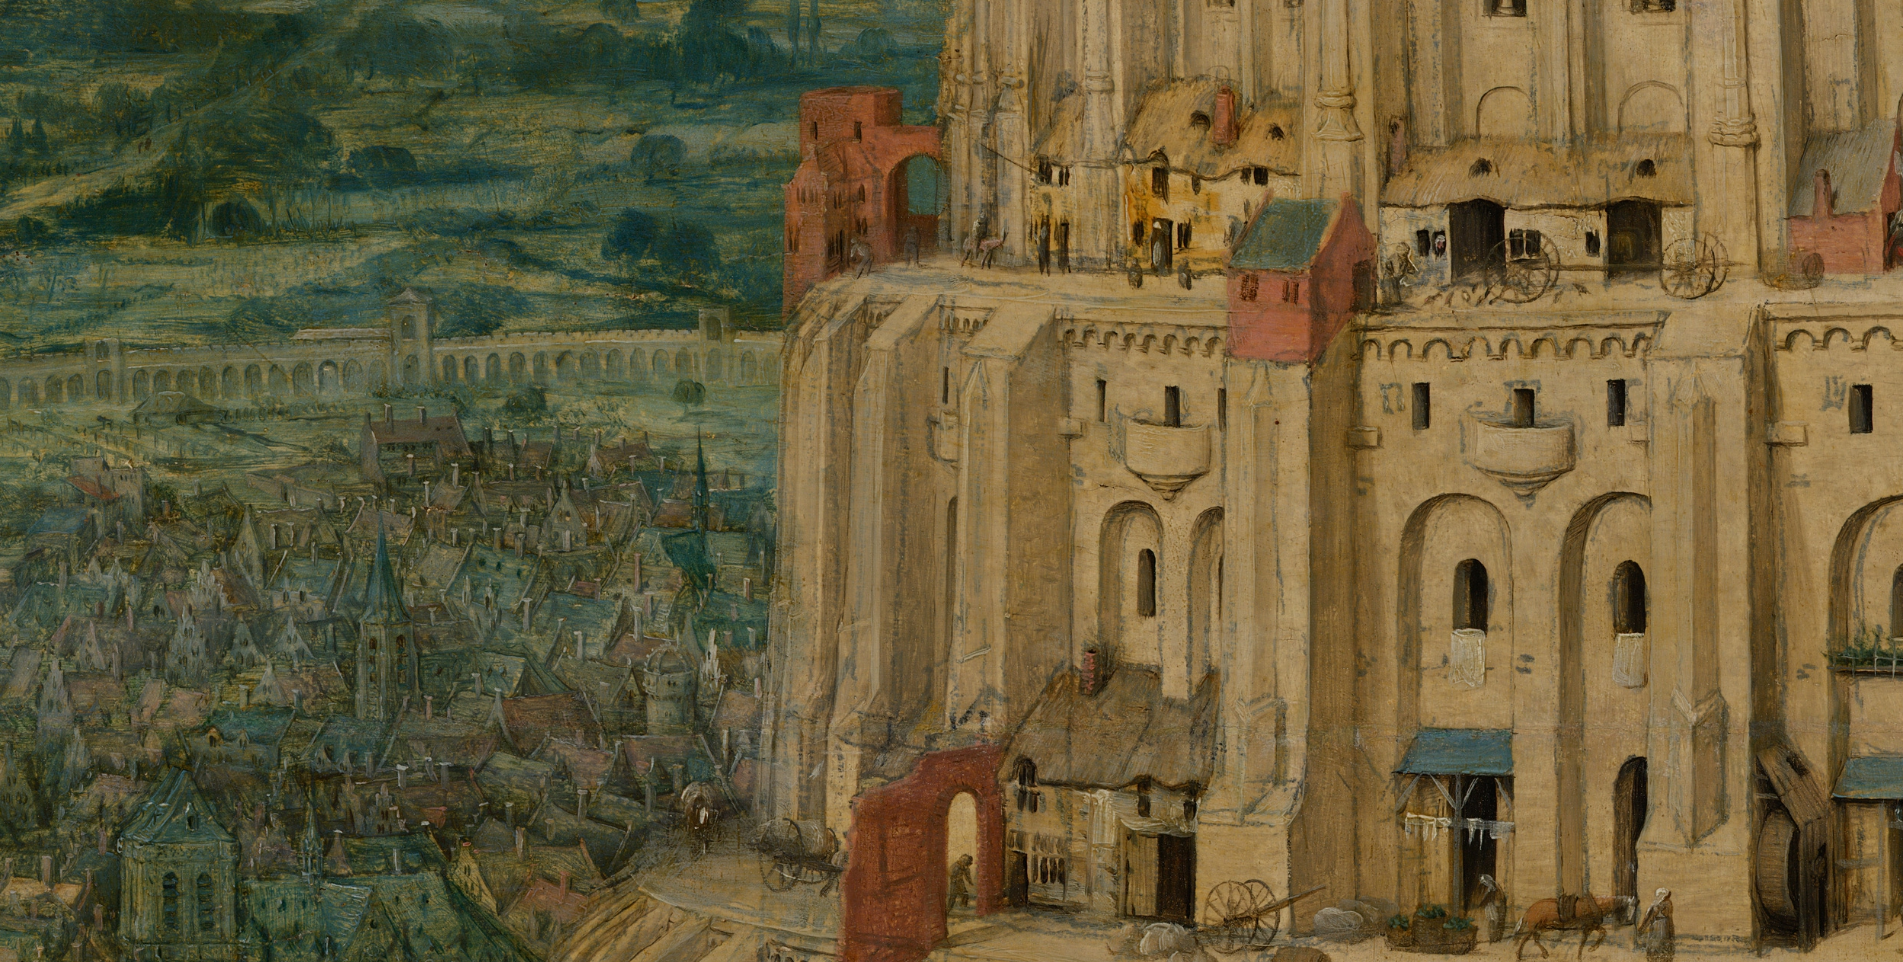 Pieter Bruegel, the Elder's painting The Tower of Babel in zoom view. Image of a city next to the tower being built.